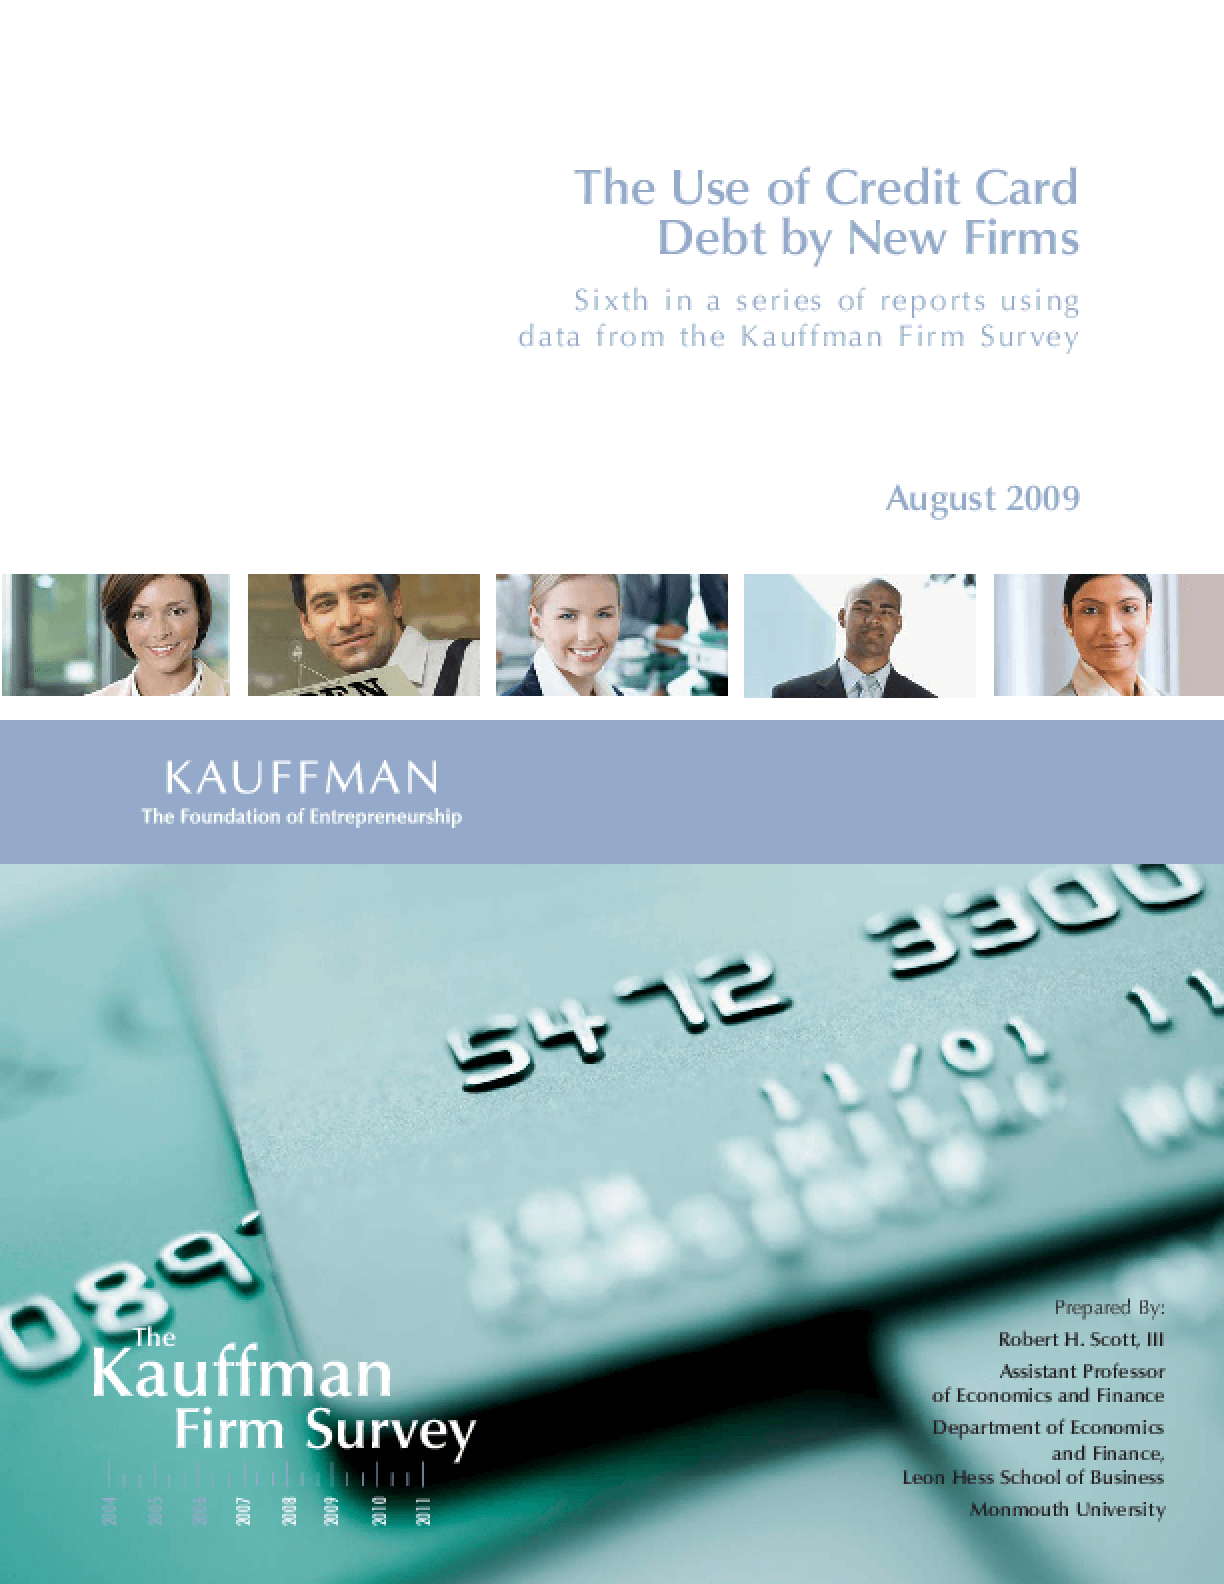 The Use of Credit Card Debt by New Firms